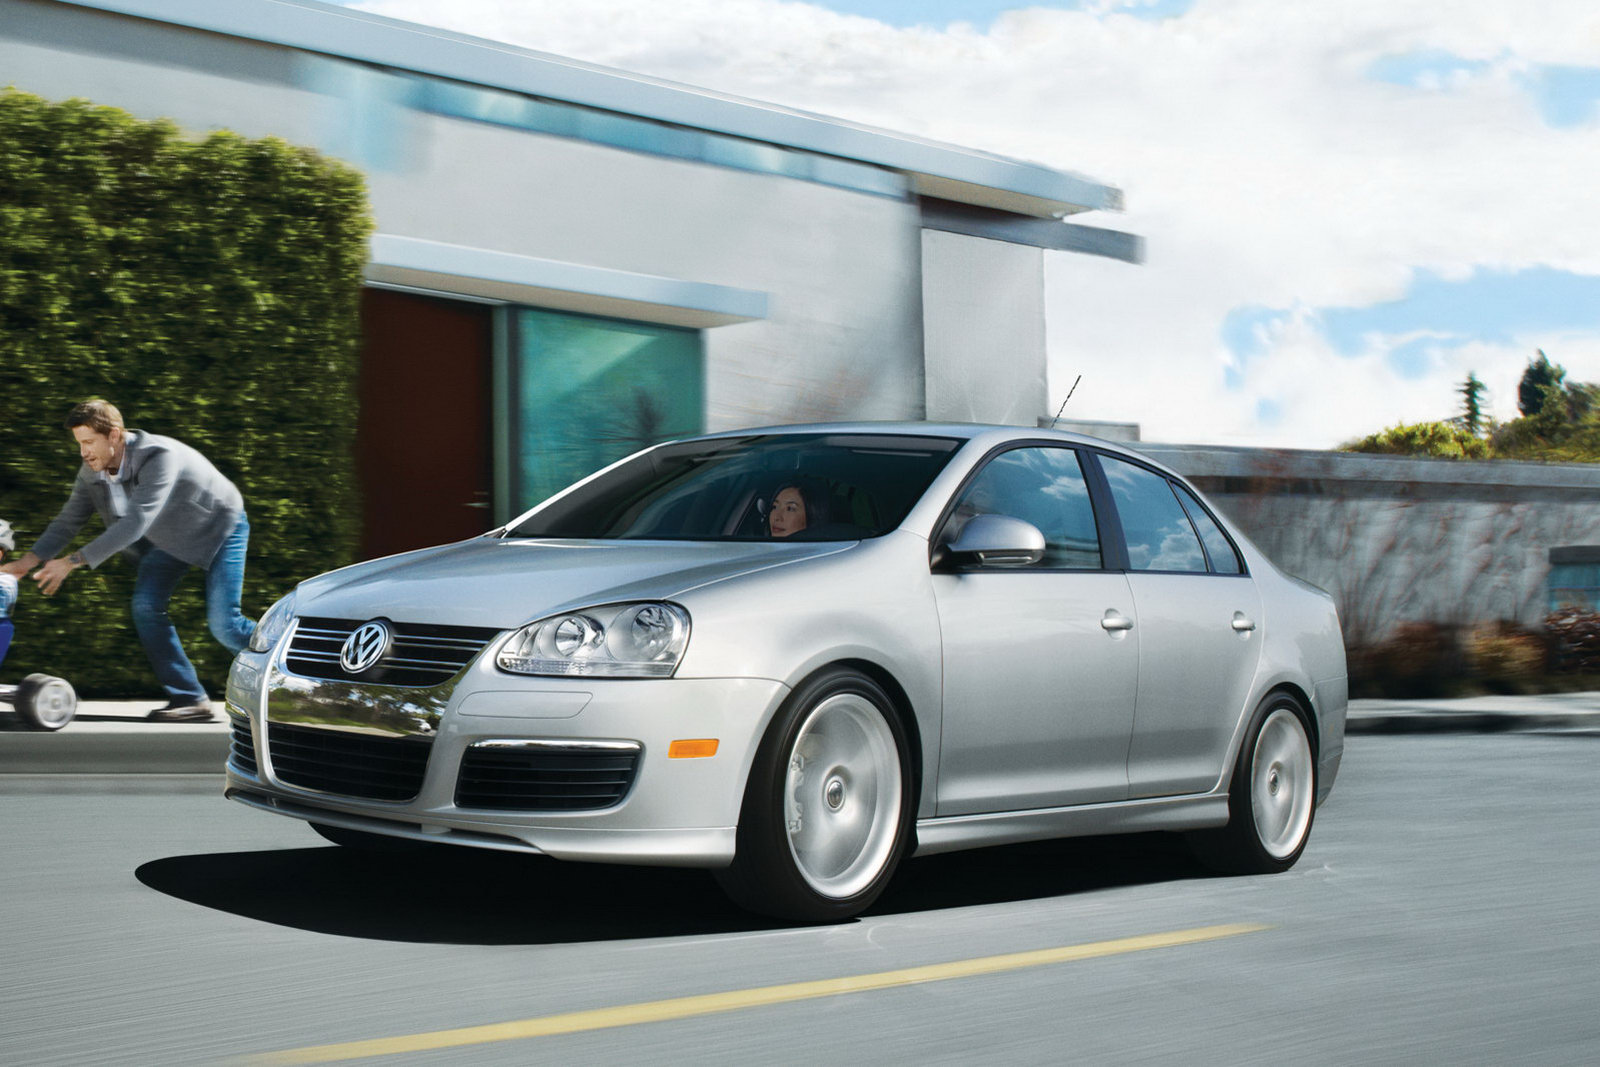 2011 volkswagen jetta sedan photos leak online. Black Bedroom Furniture Sets. Home Design Ideas